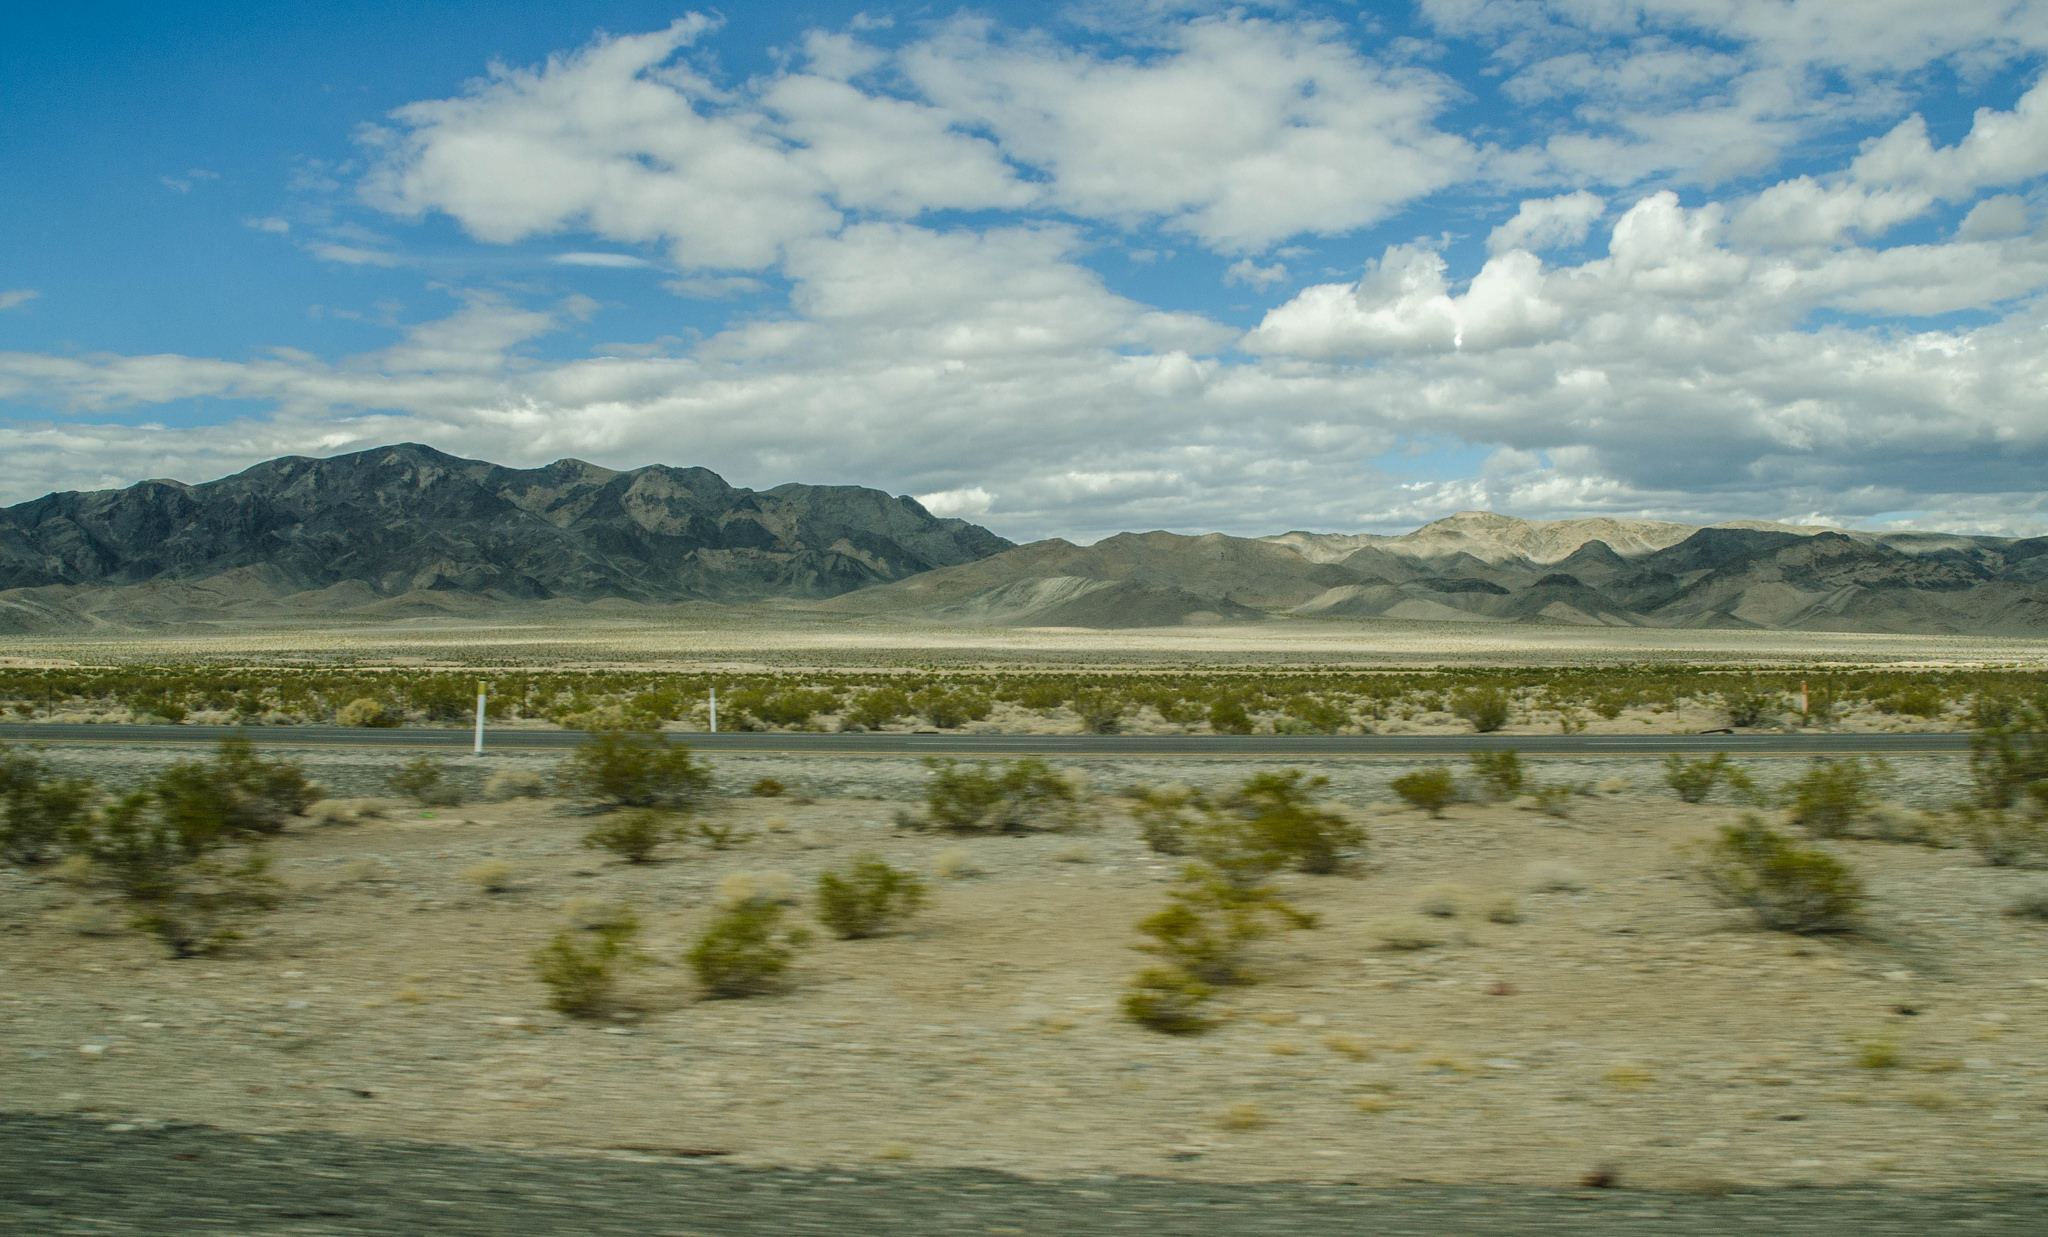 Nevada National Security Site. Photo by Wayne Hsieh via Creative Commons